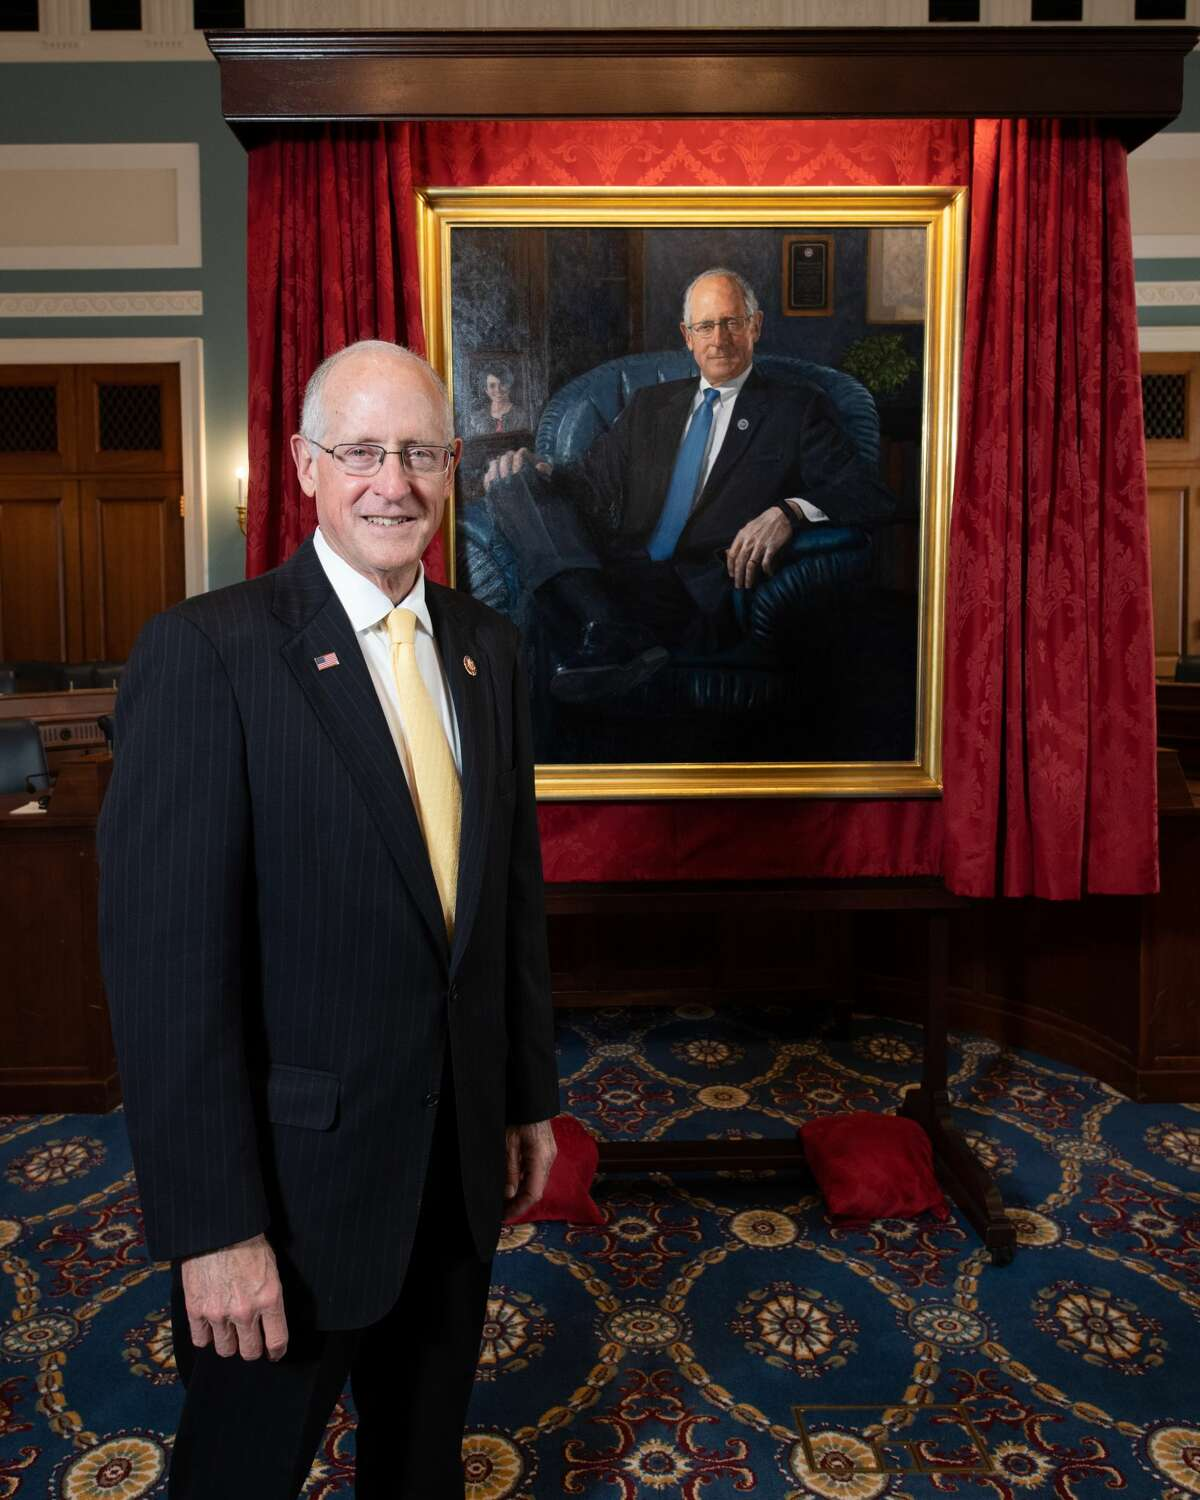 U.S. Rep. Mike Conaway stands in front of a portrait of him.